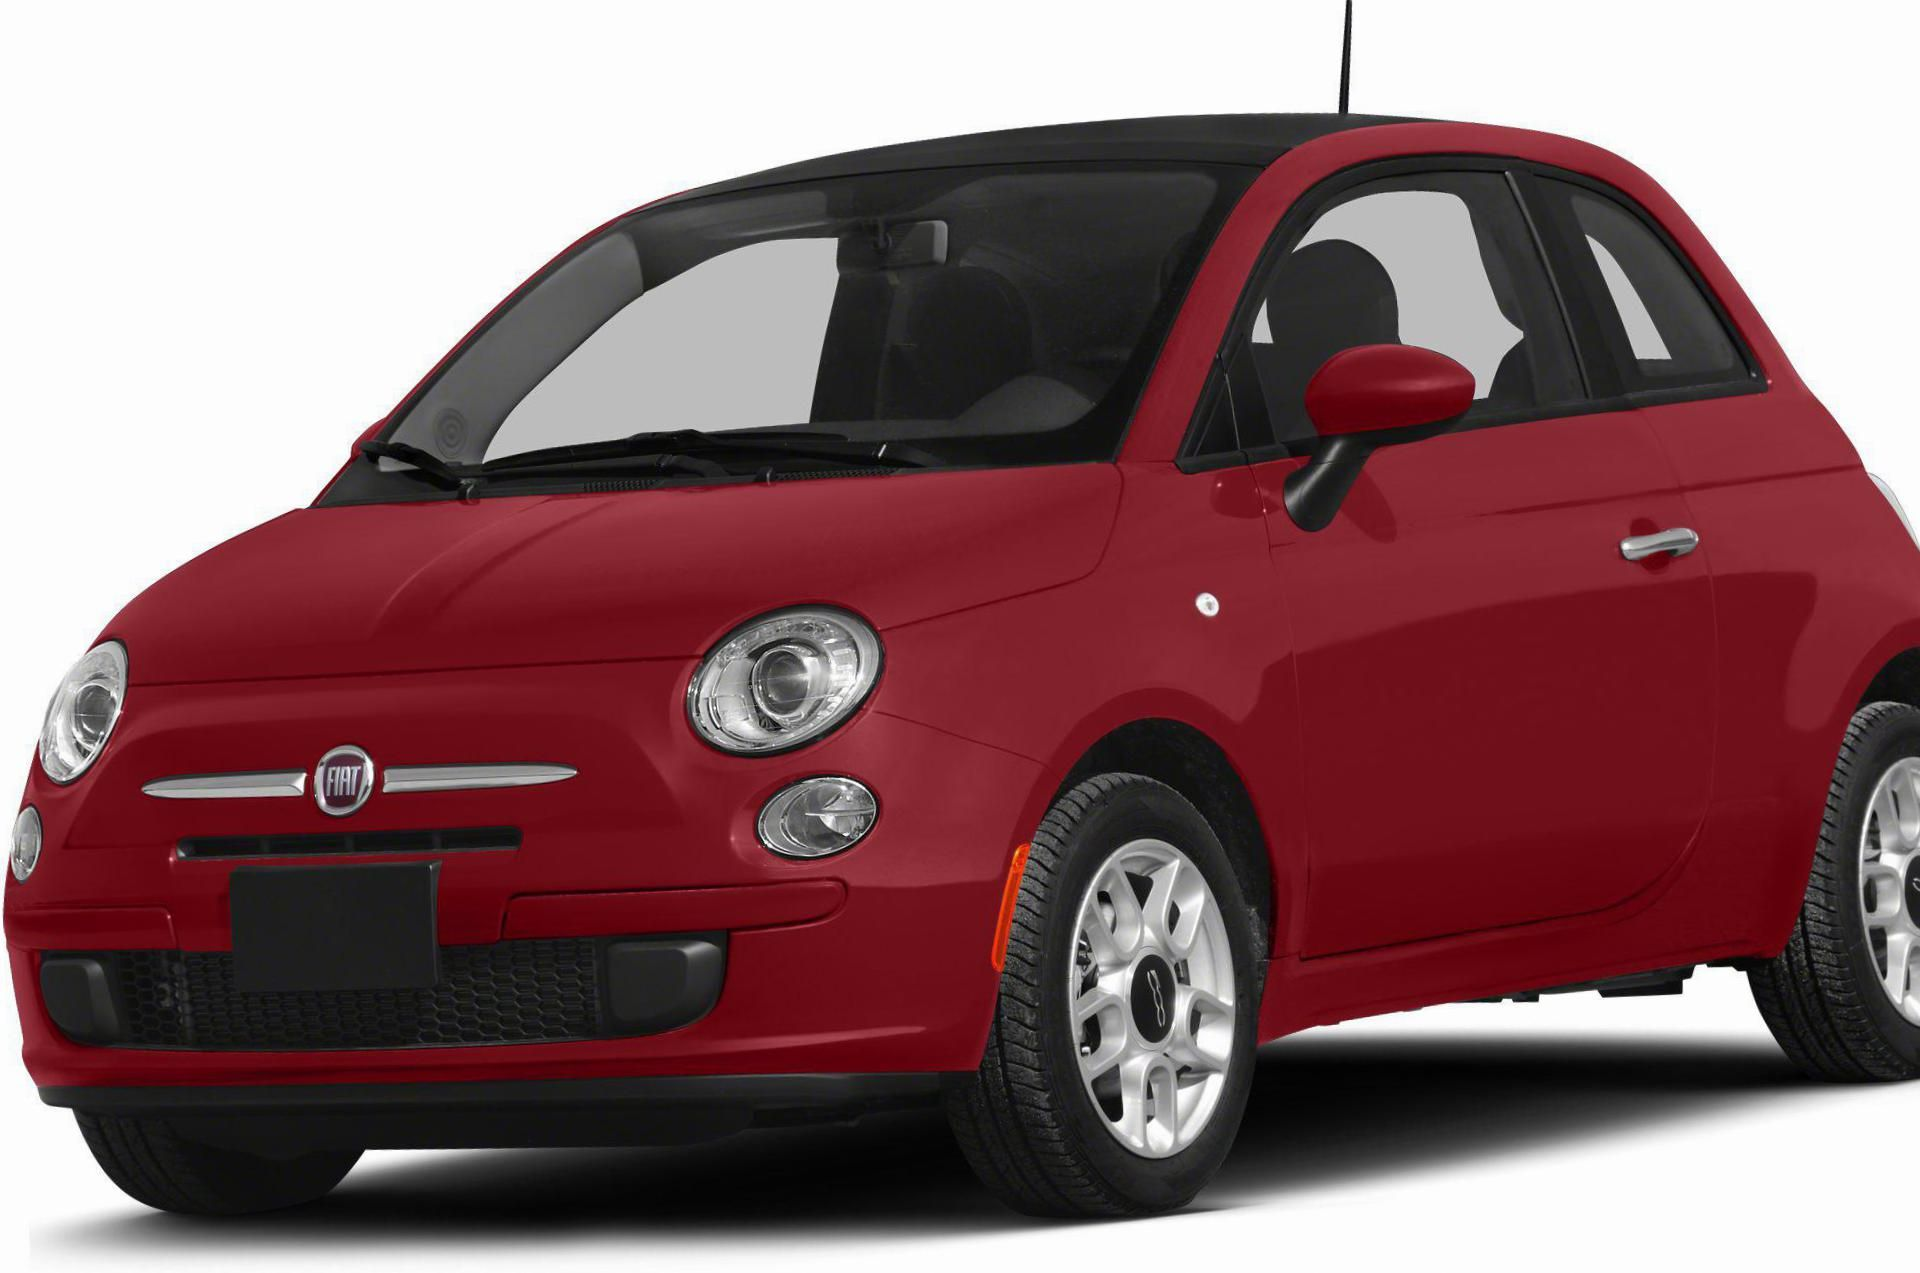 open premiere excitement high price fiat the adds performance canada small air and car chrysler canadian new italian ultimate news driving of abarth releases